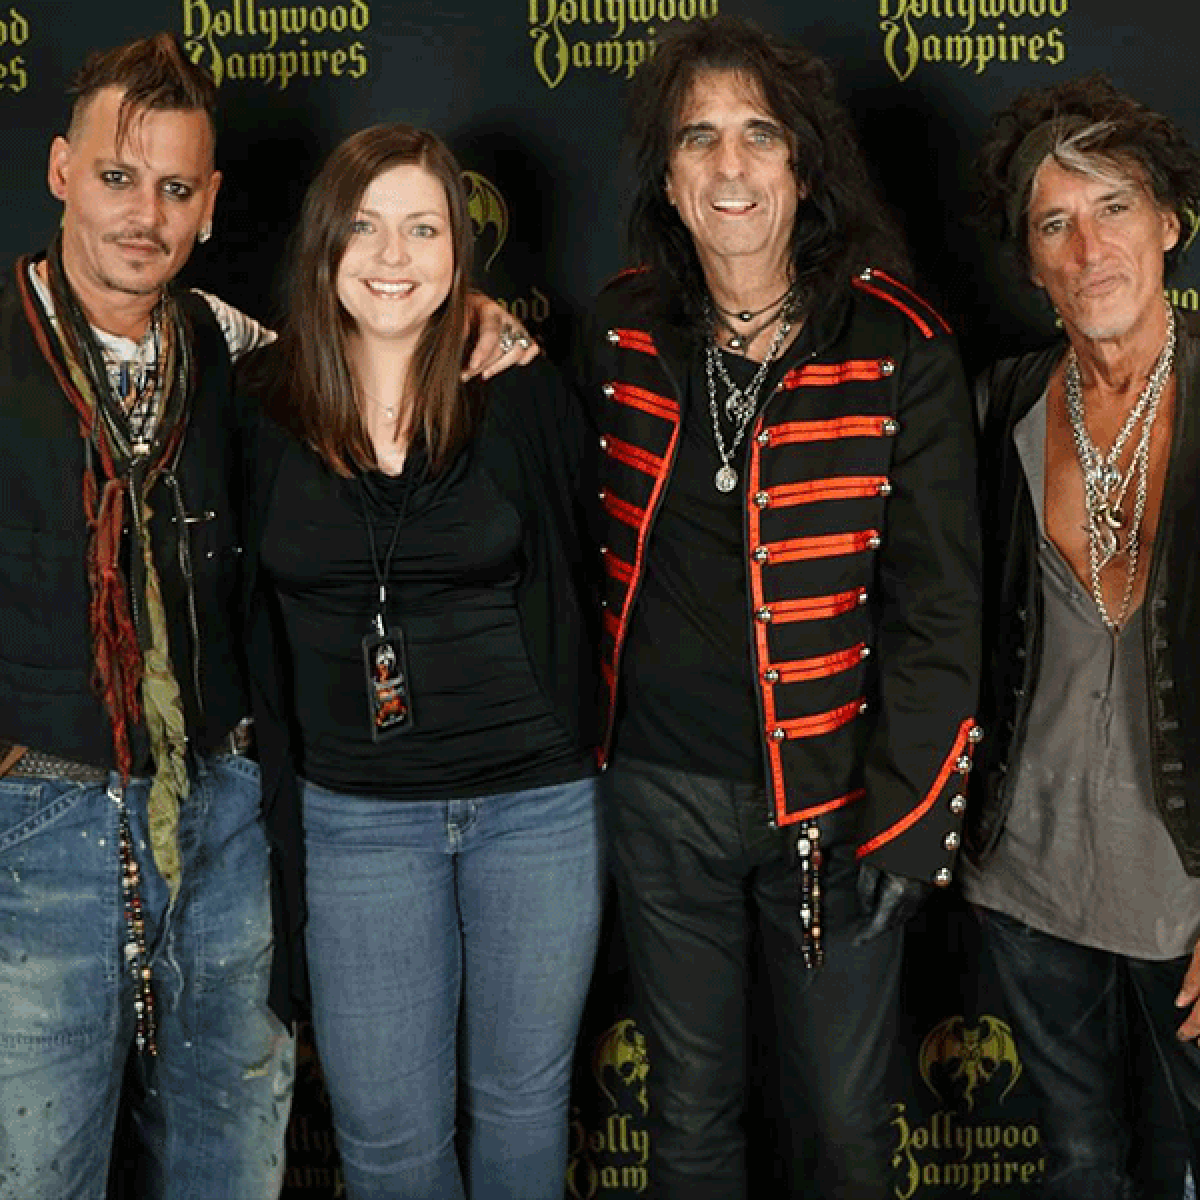 Hollywood Vampires News